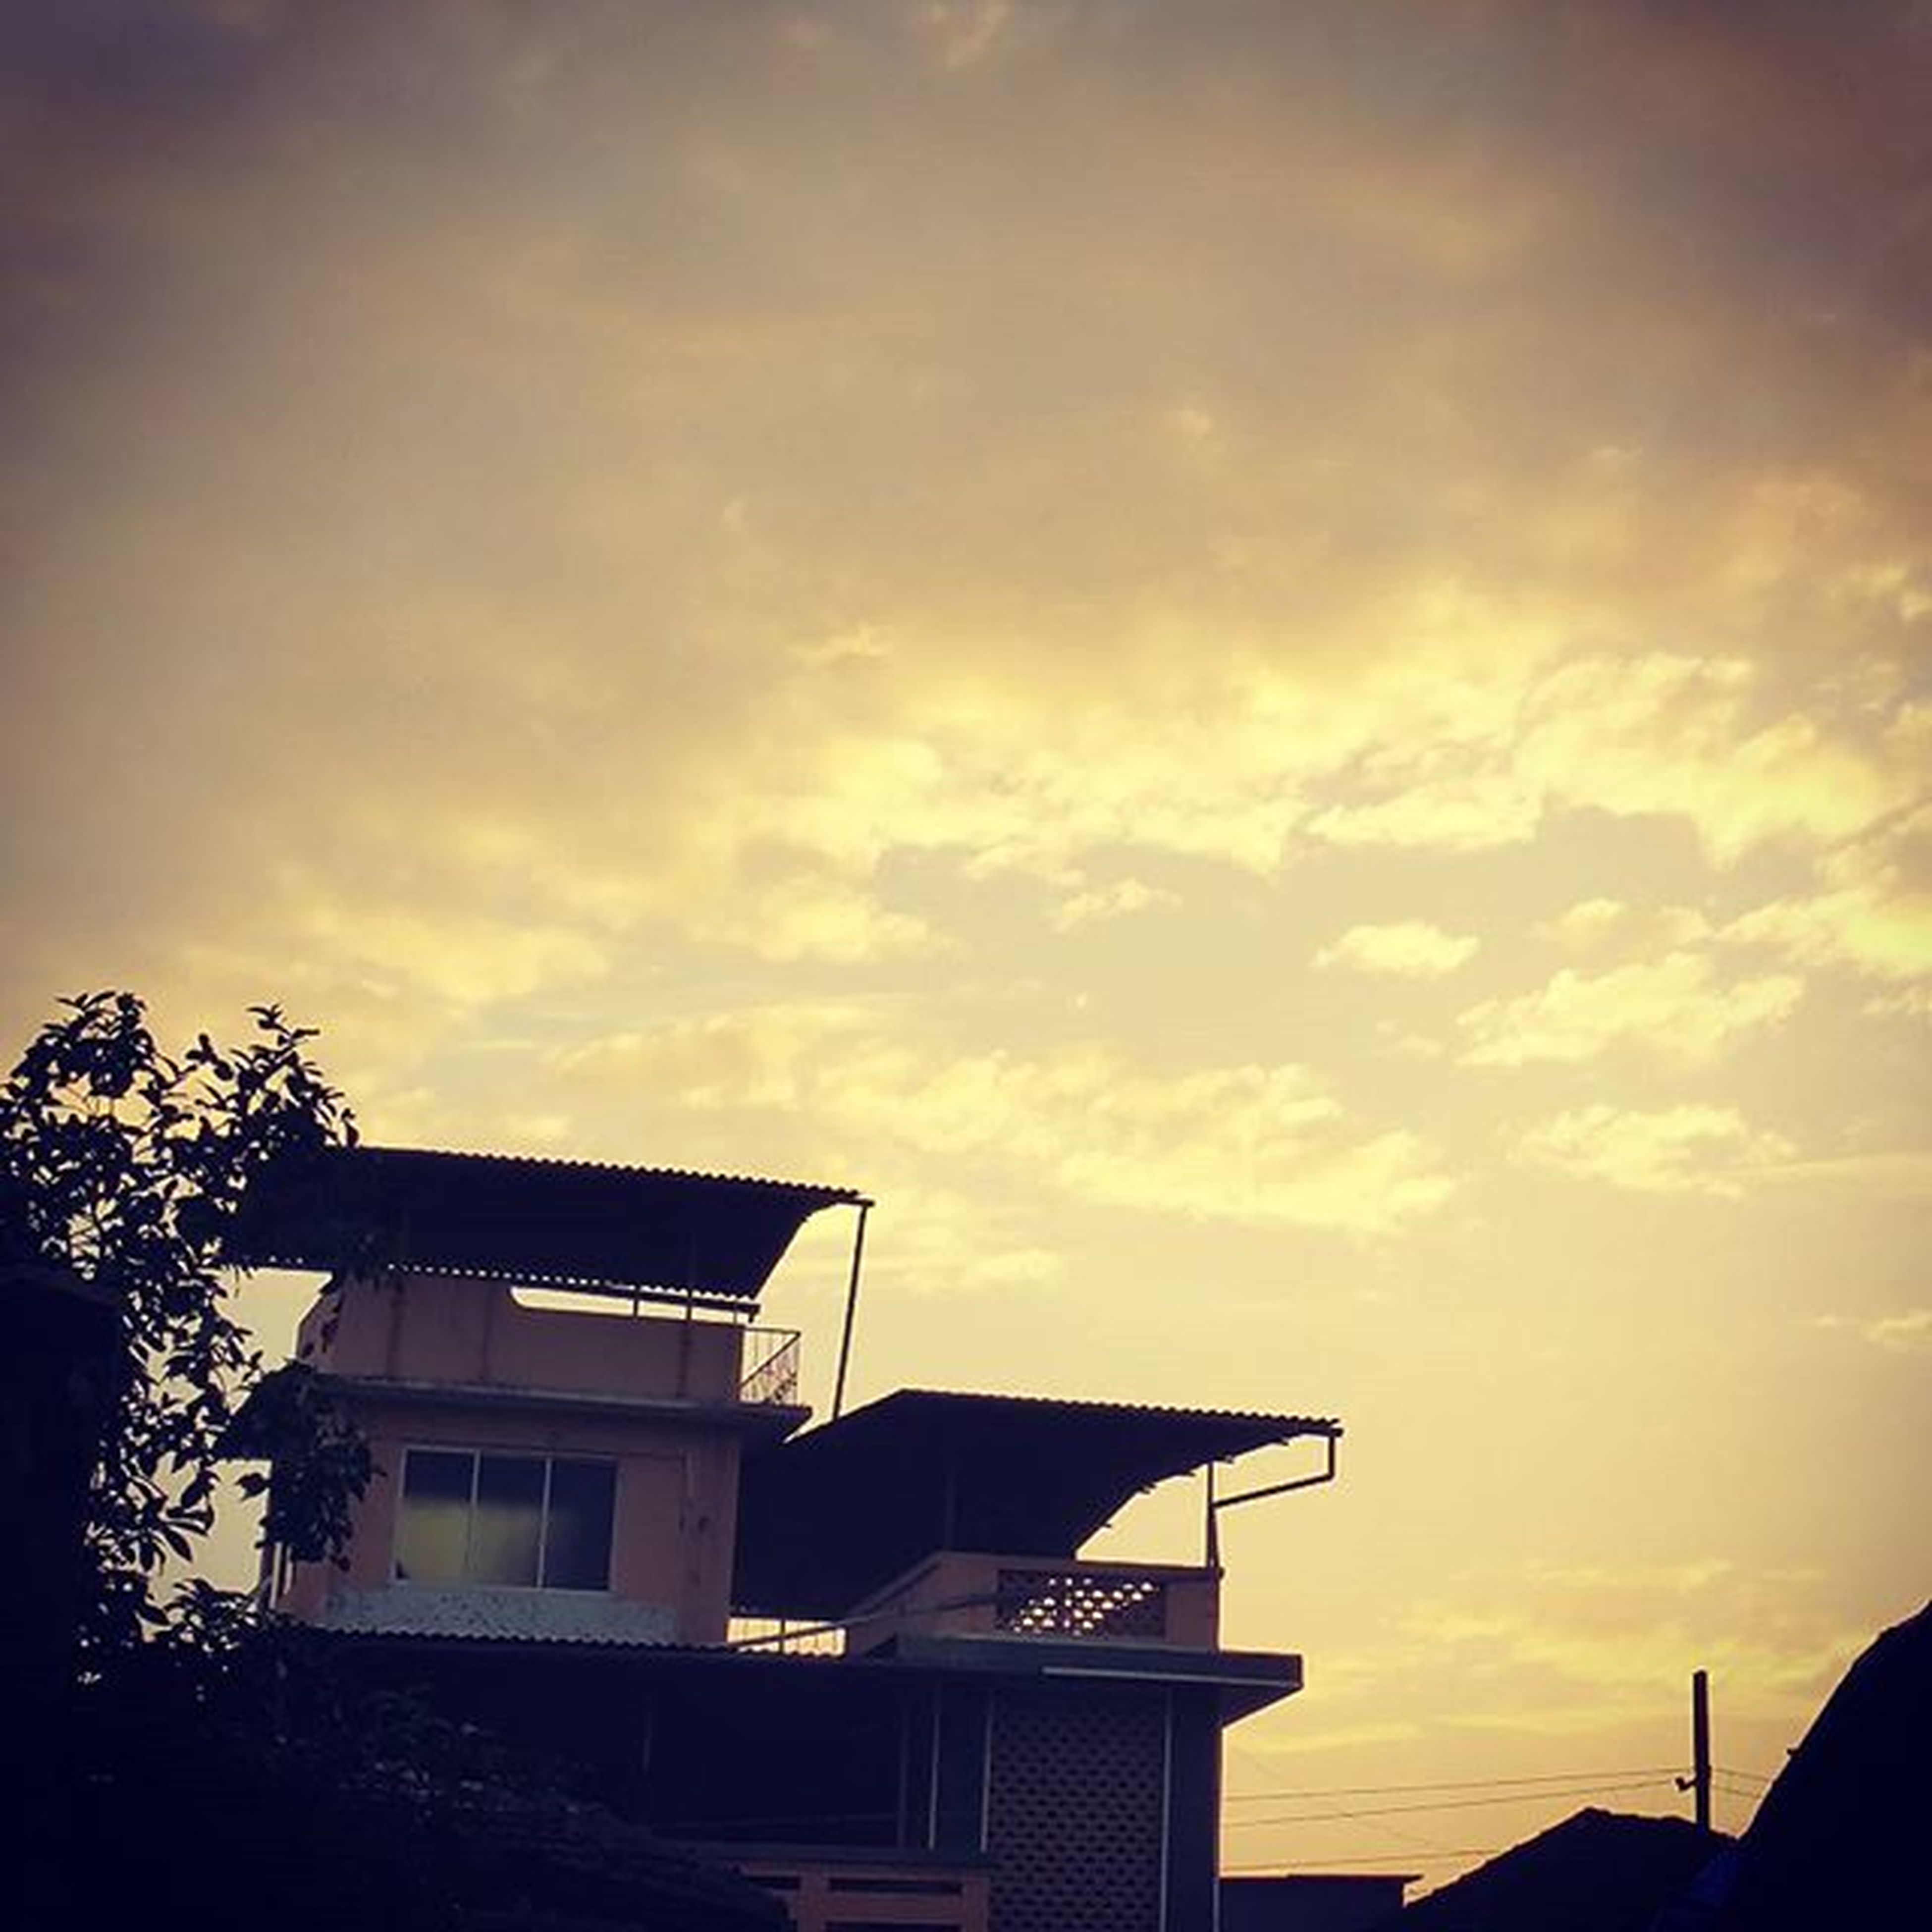 sunset, building exterior, built structure, architecture, sky, house, cloud - sky, silhouette, residential structure, orange color, low angle view, cloud, beauty in nature, residential building, nature, roof, cloudy, scenics, outdoors, tree